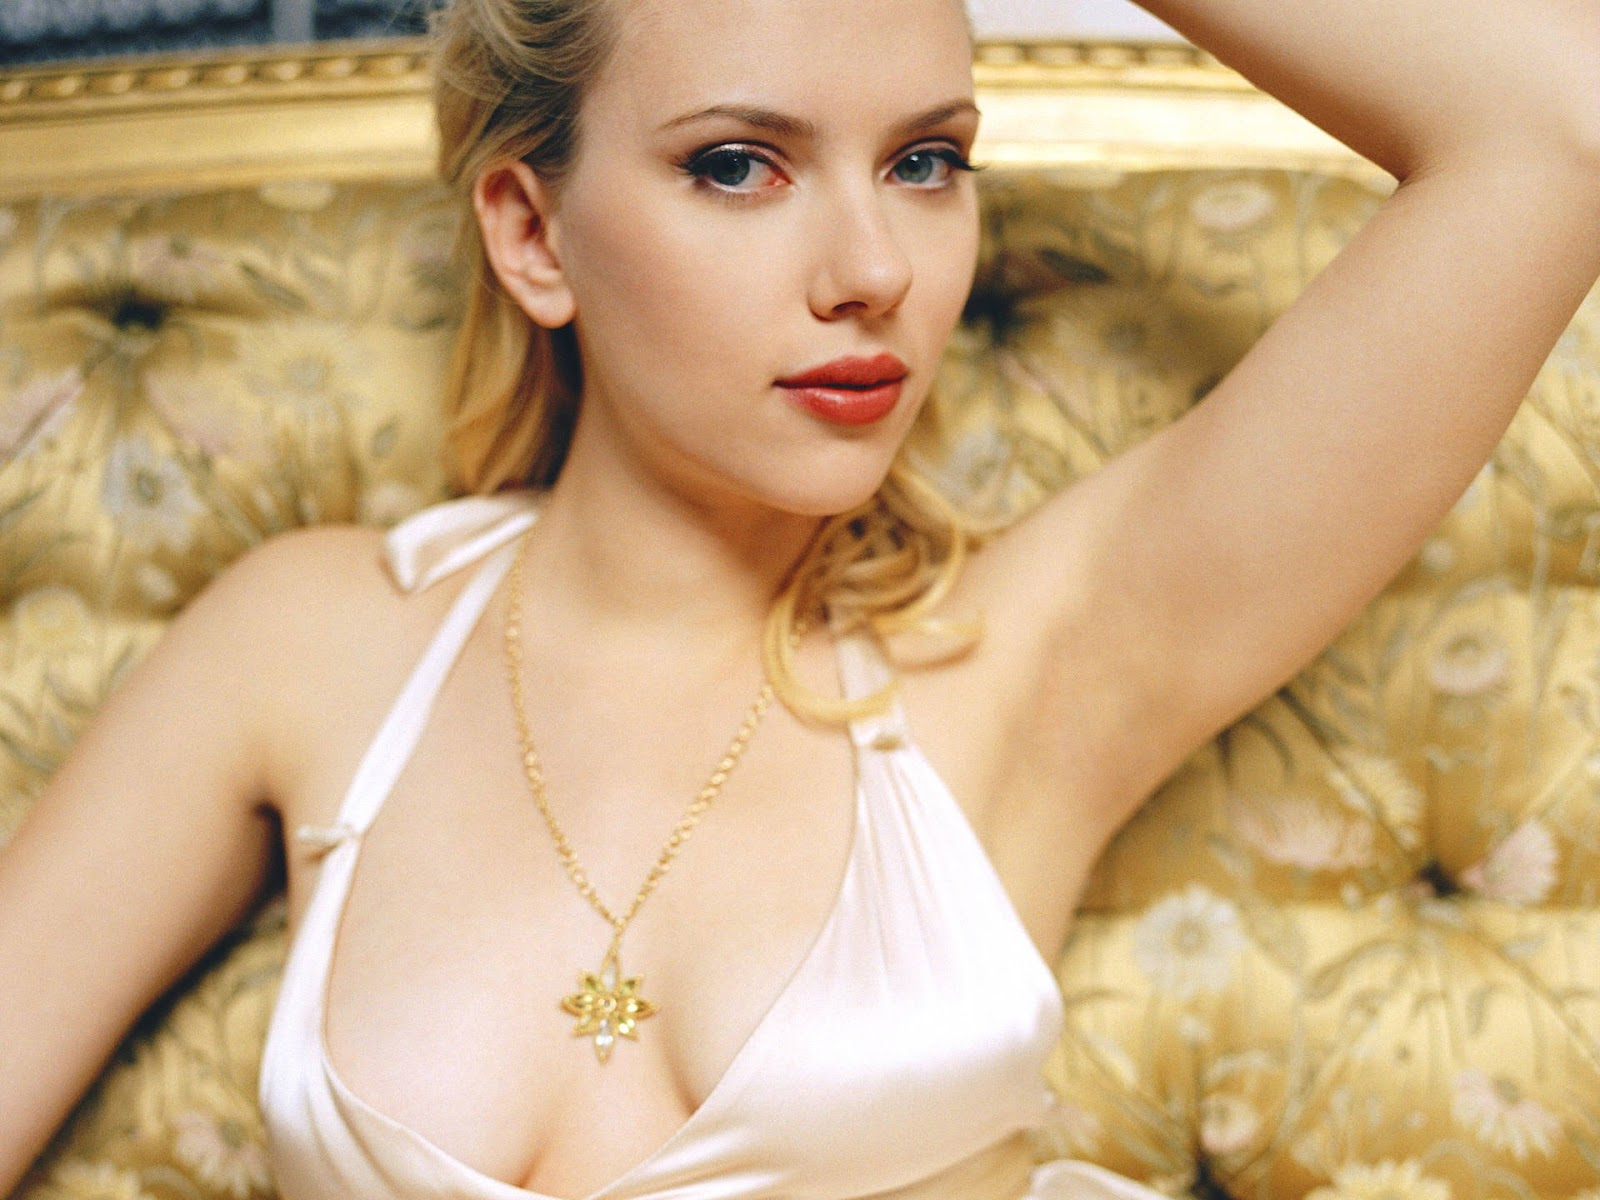 scarlett johansson wallpapers HD sexy gold necklace